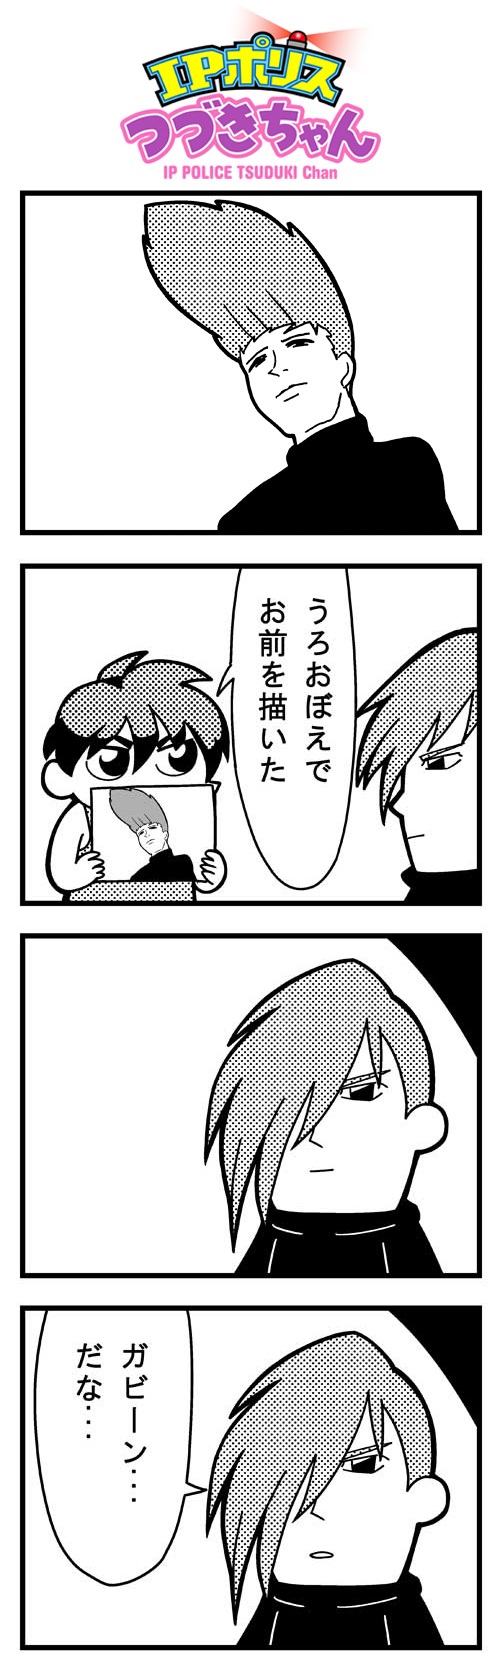 2boys 4koma bangs bkub character_request comic greyscale gundam gundam_wing hair_over_one_eye highres holding_photo ip_police_tsuduki_chan monochrome multicolored_hair multiple_boys photo_(object) shirt short_hair simple_background speech_bubble talking translation_request two-tone_background two-tone_hair undershirt